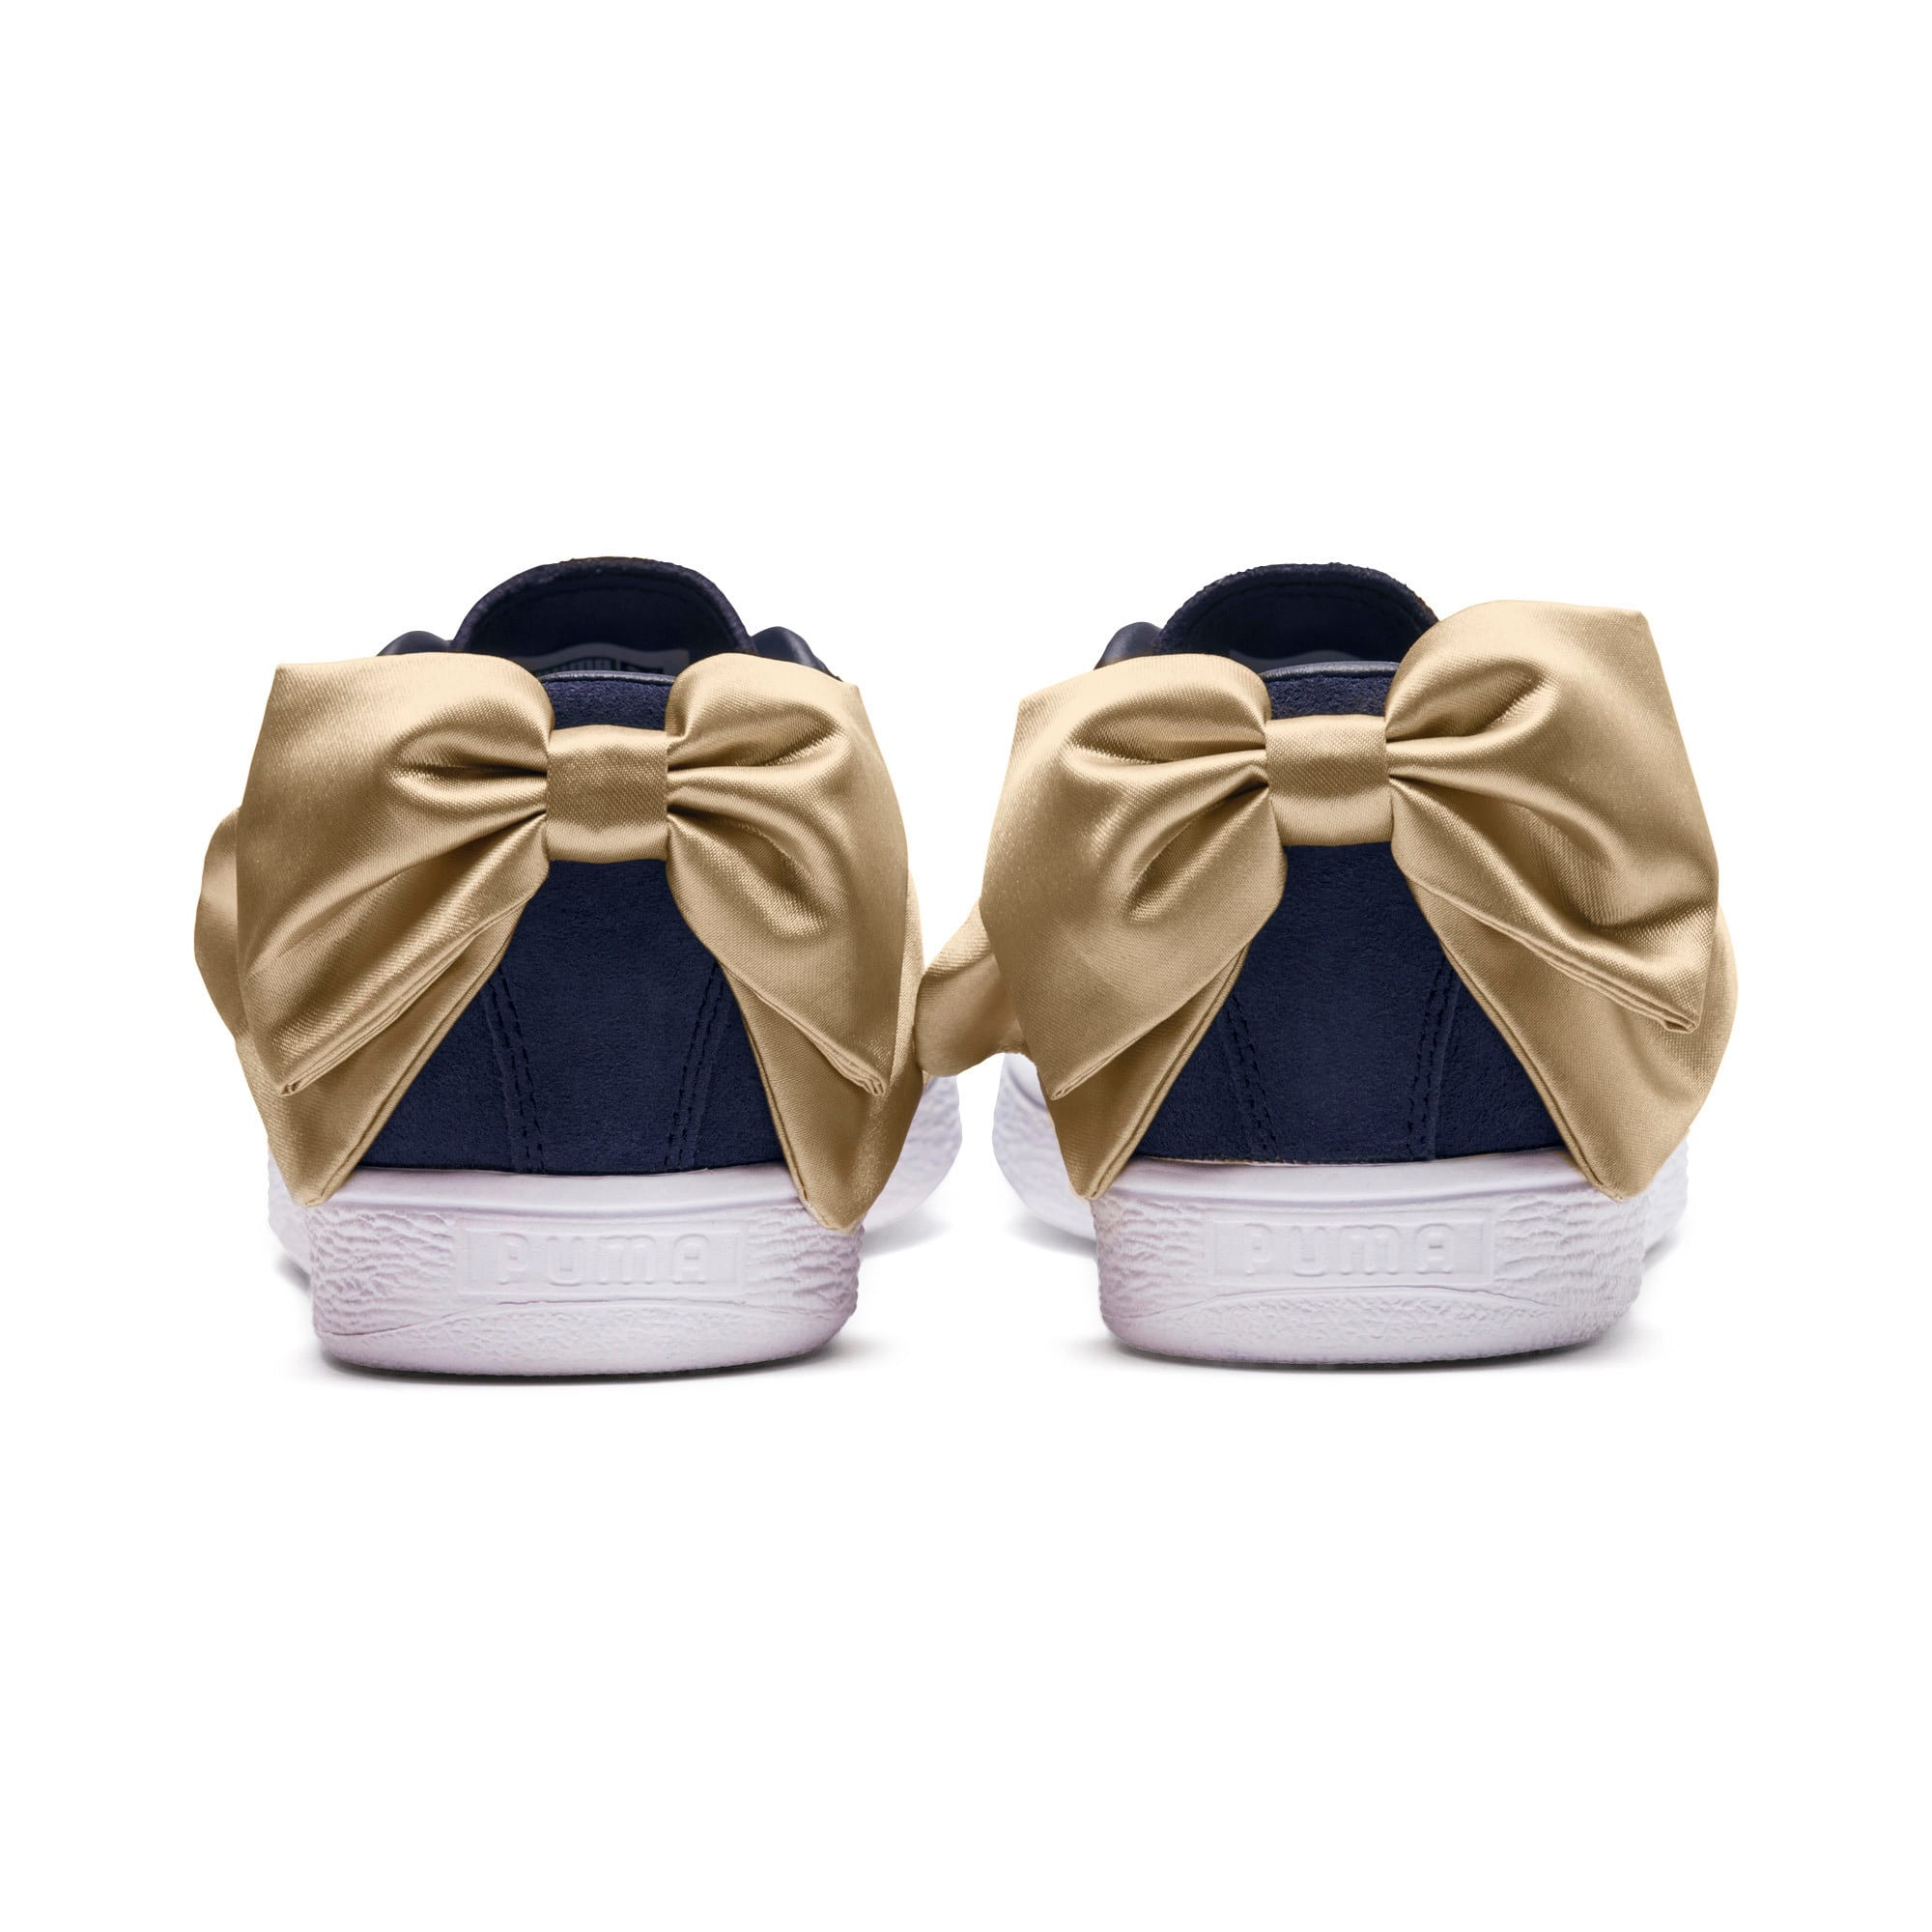 Thumbnail 3 of Suede Bow Varsity Women's Trainers, Peacoat-Metallic Gold, medium-IND